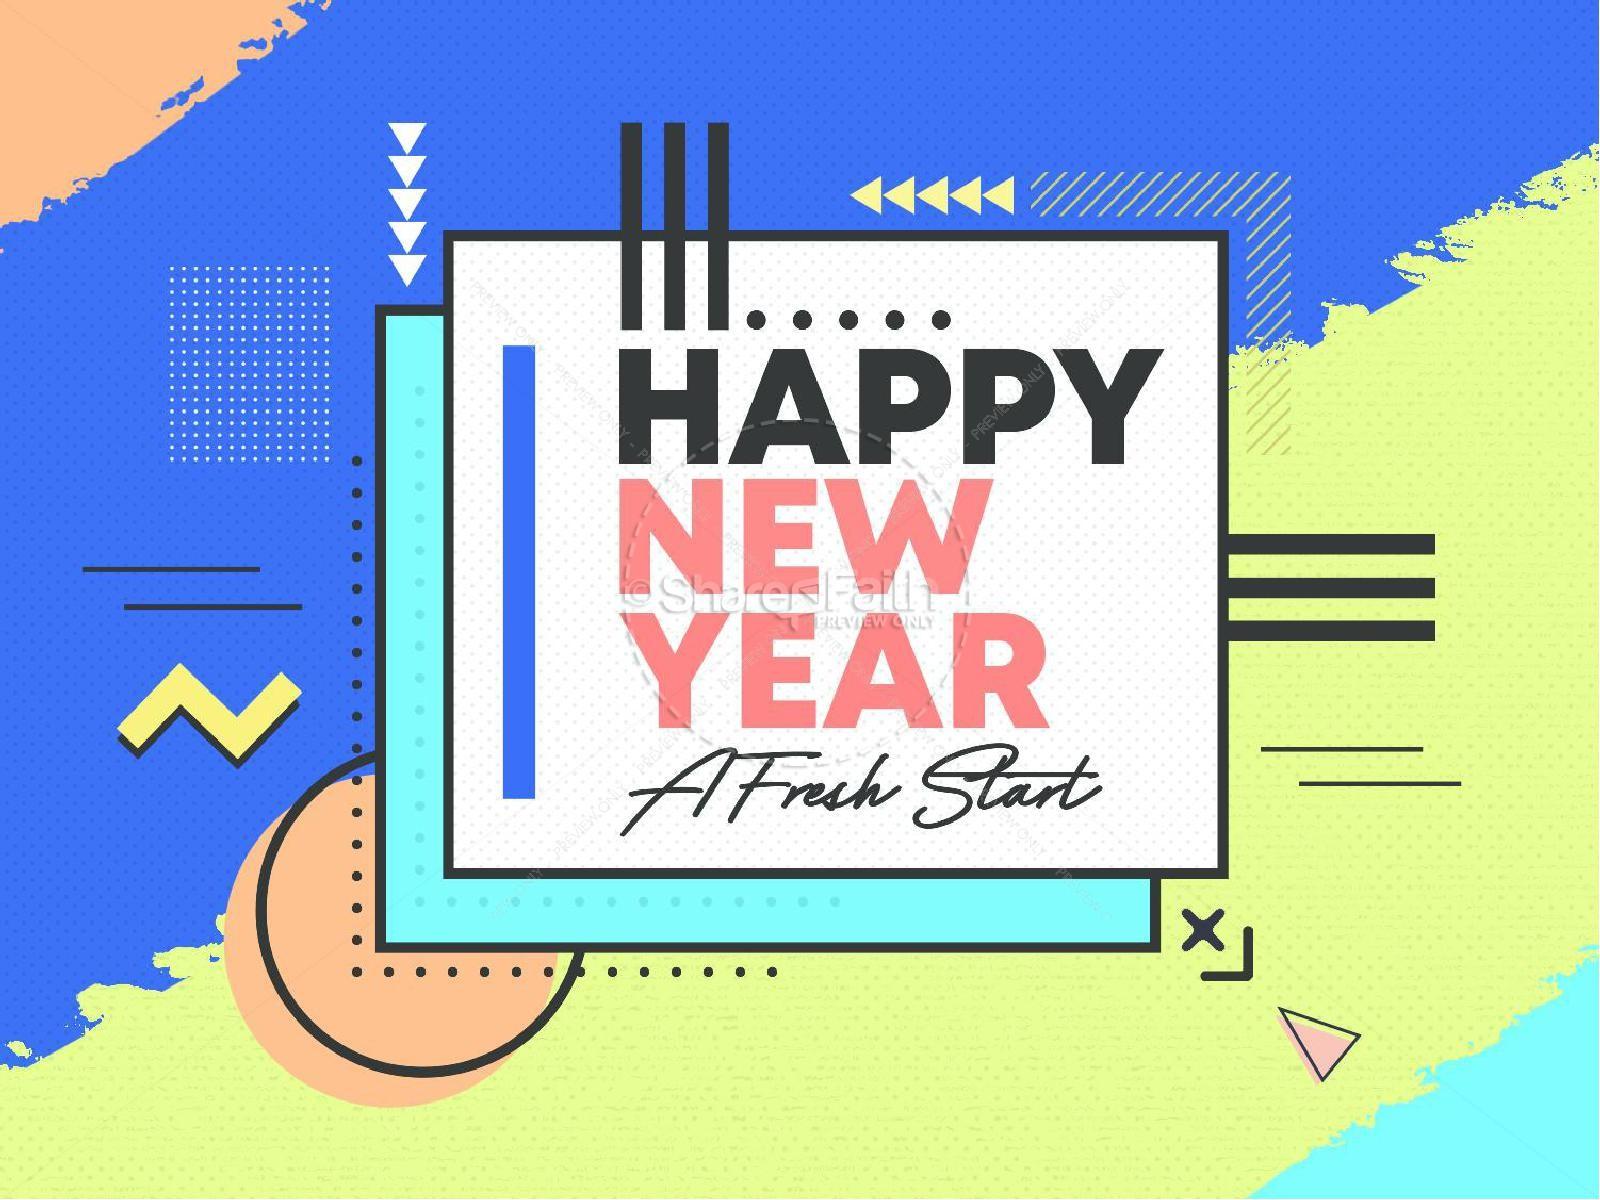 Happy New Year Fresh Start PowerPoint